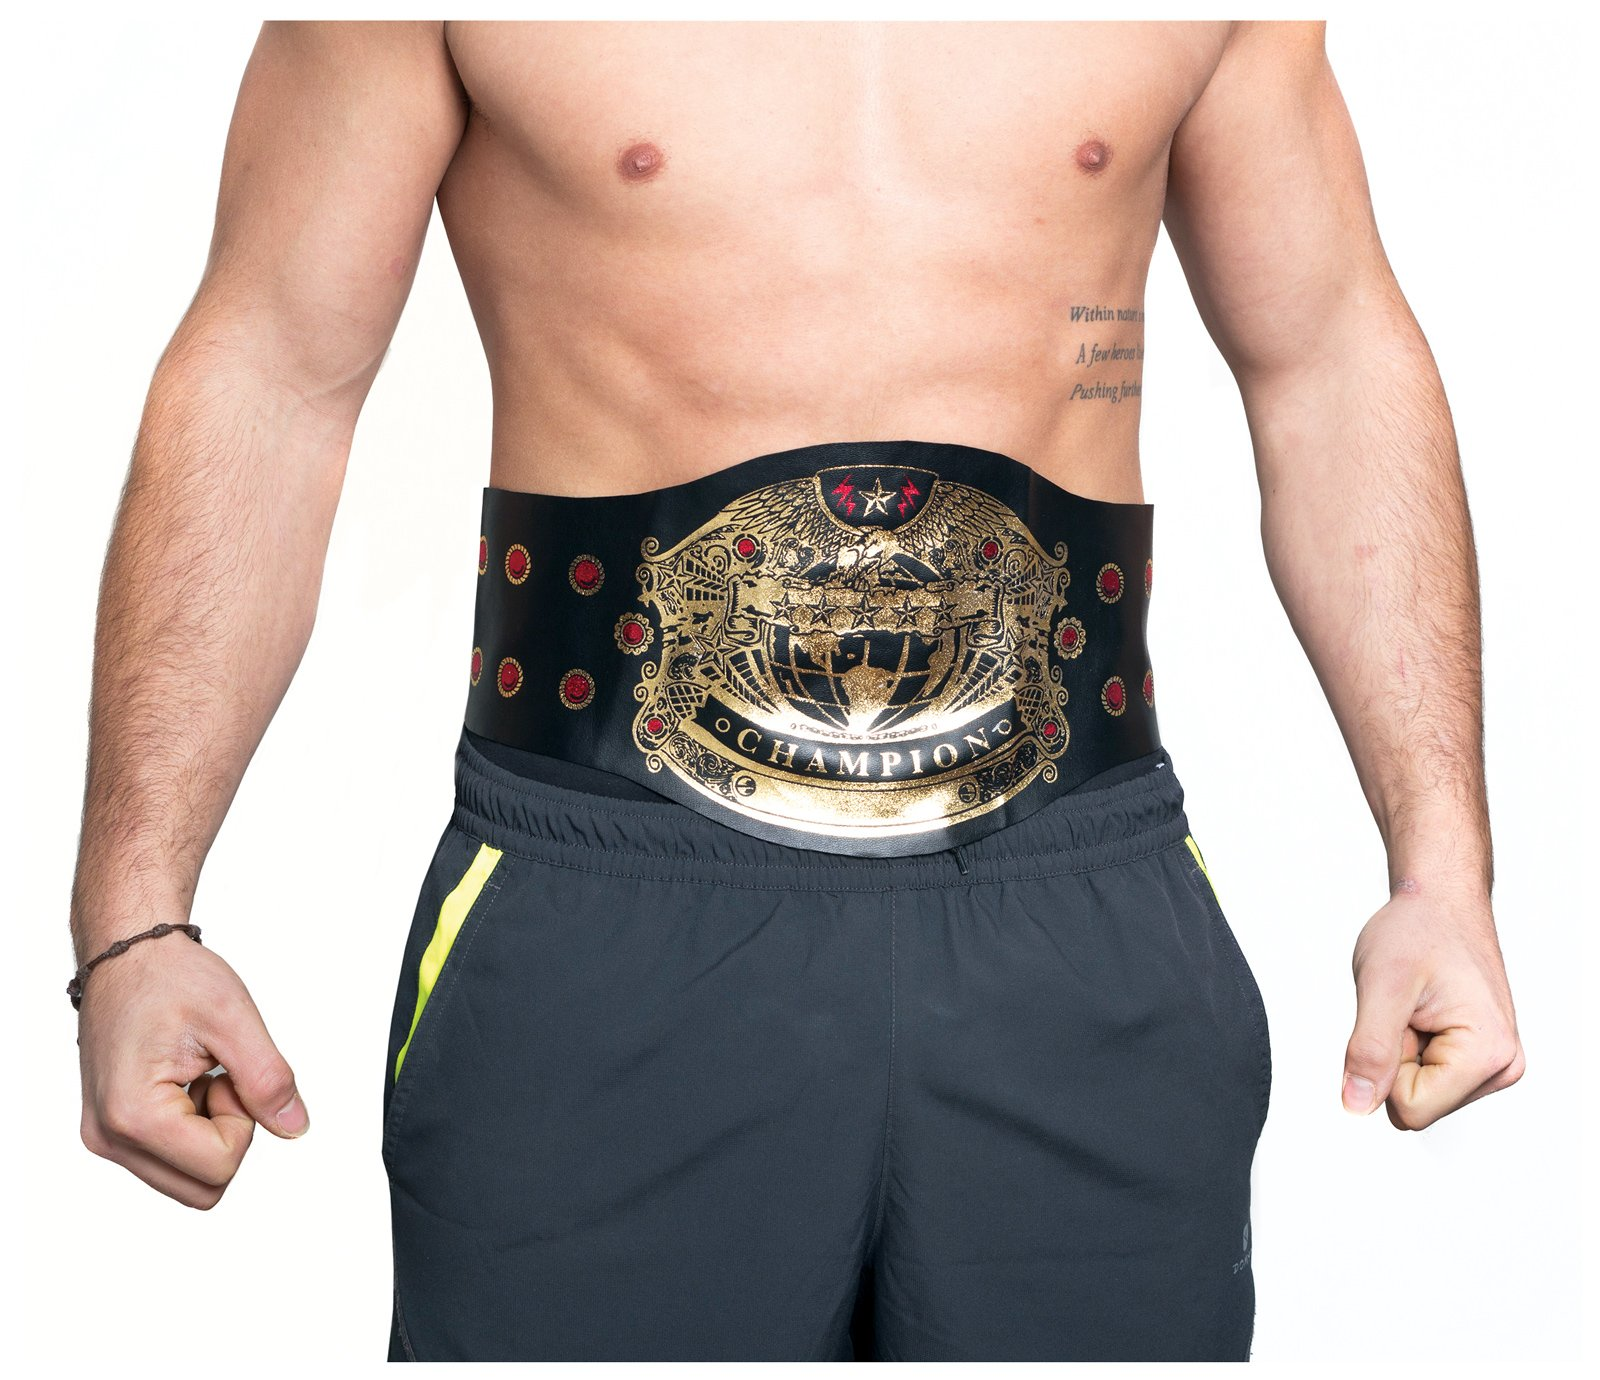 Men's Champion Wrestling Belt Costume Accessory (One Size) by Largemouth